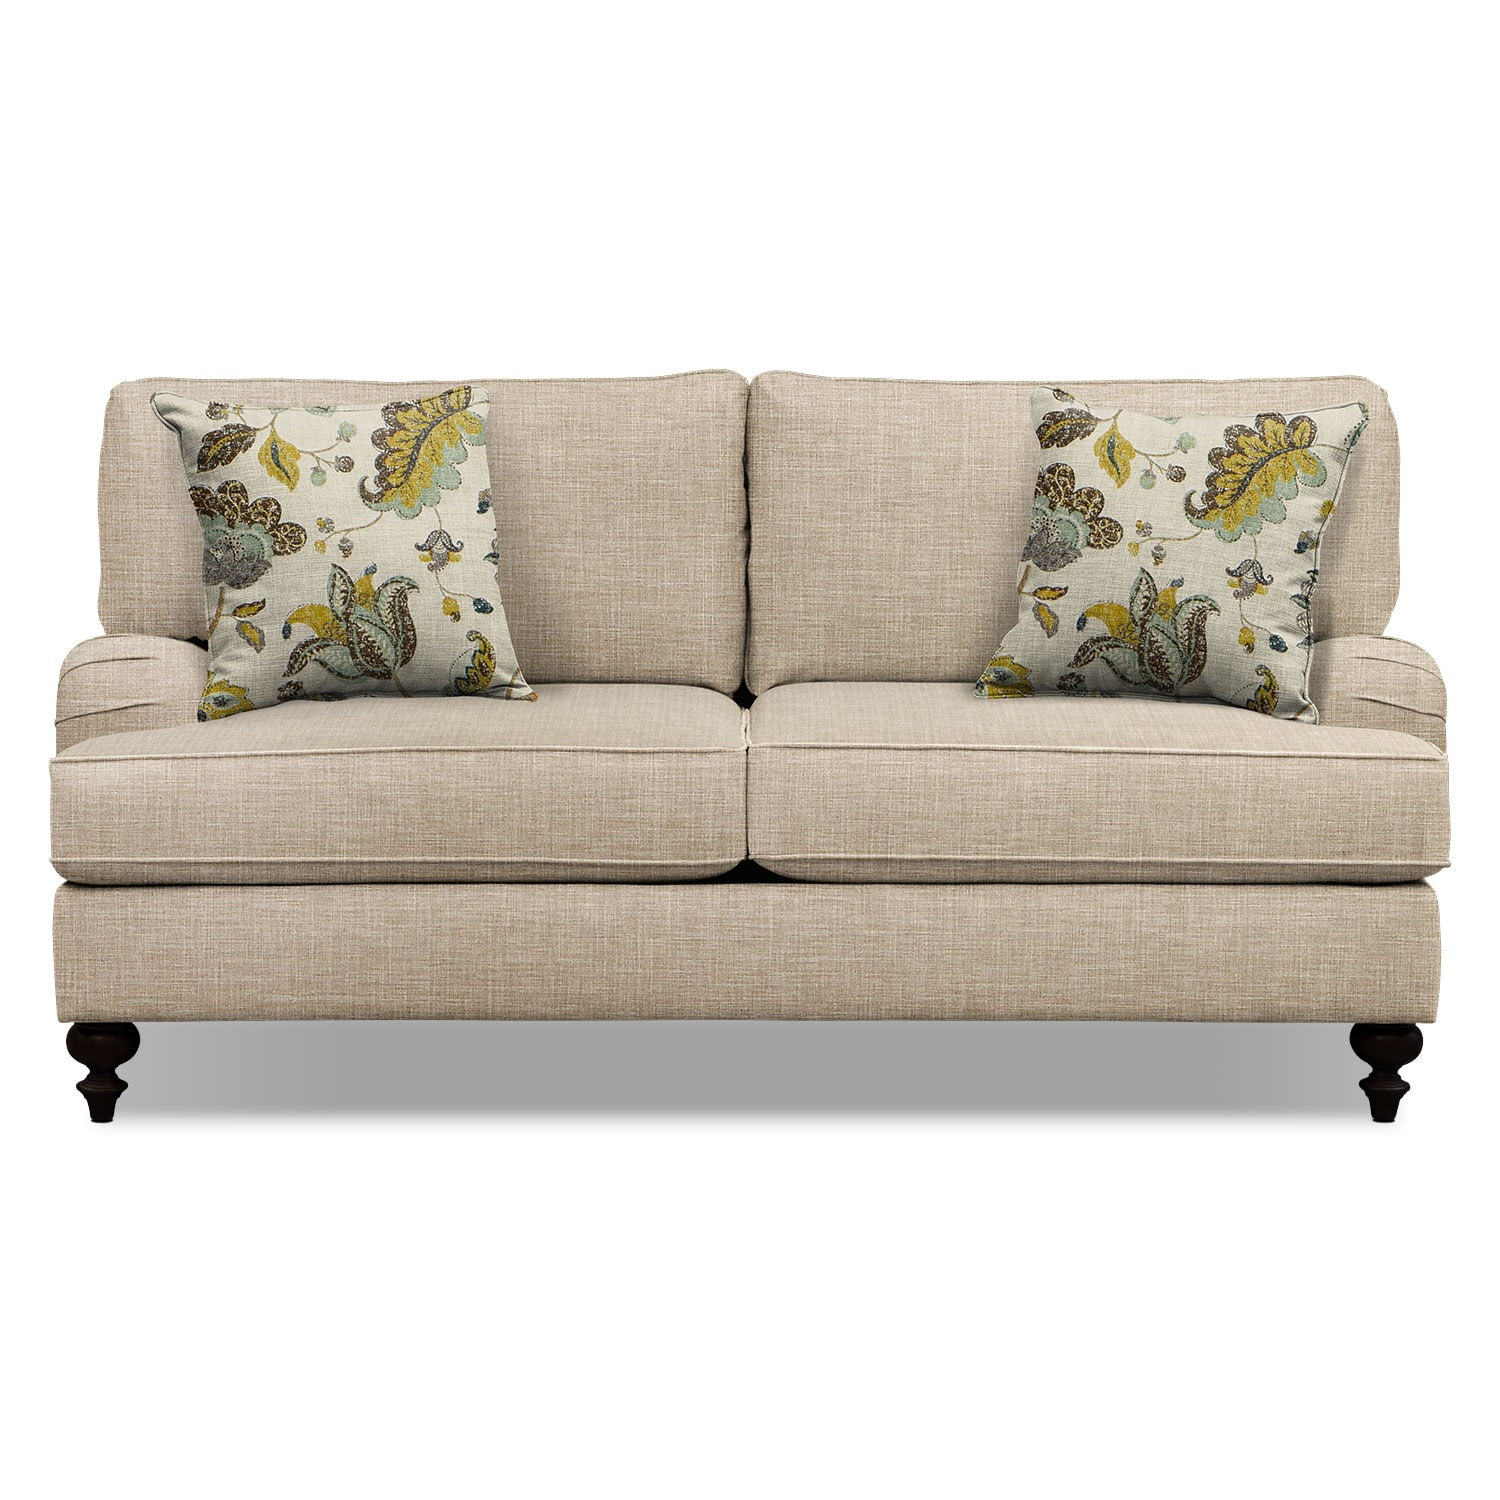 American Leather Sofas On Sale: Living Room Seating